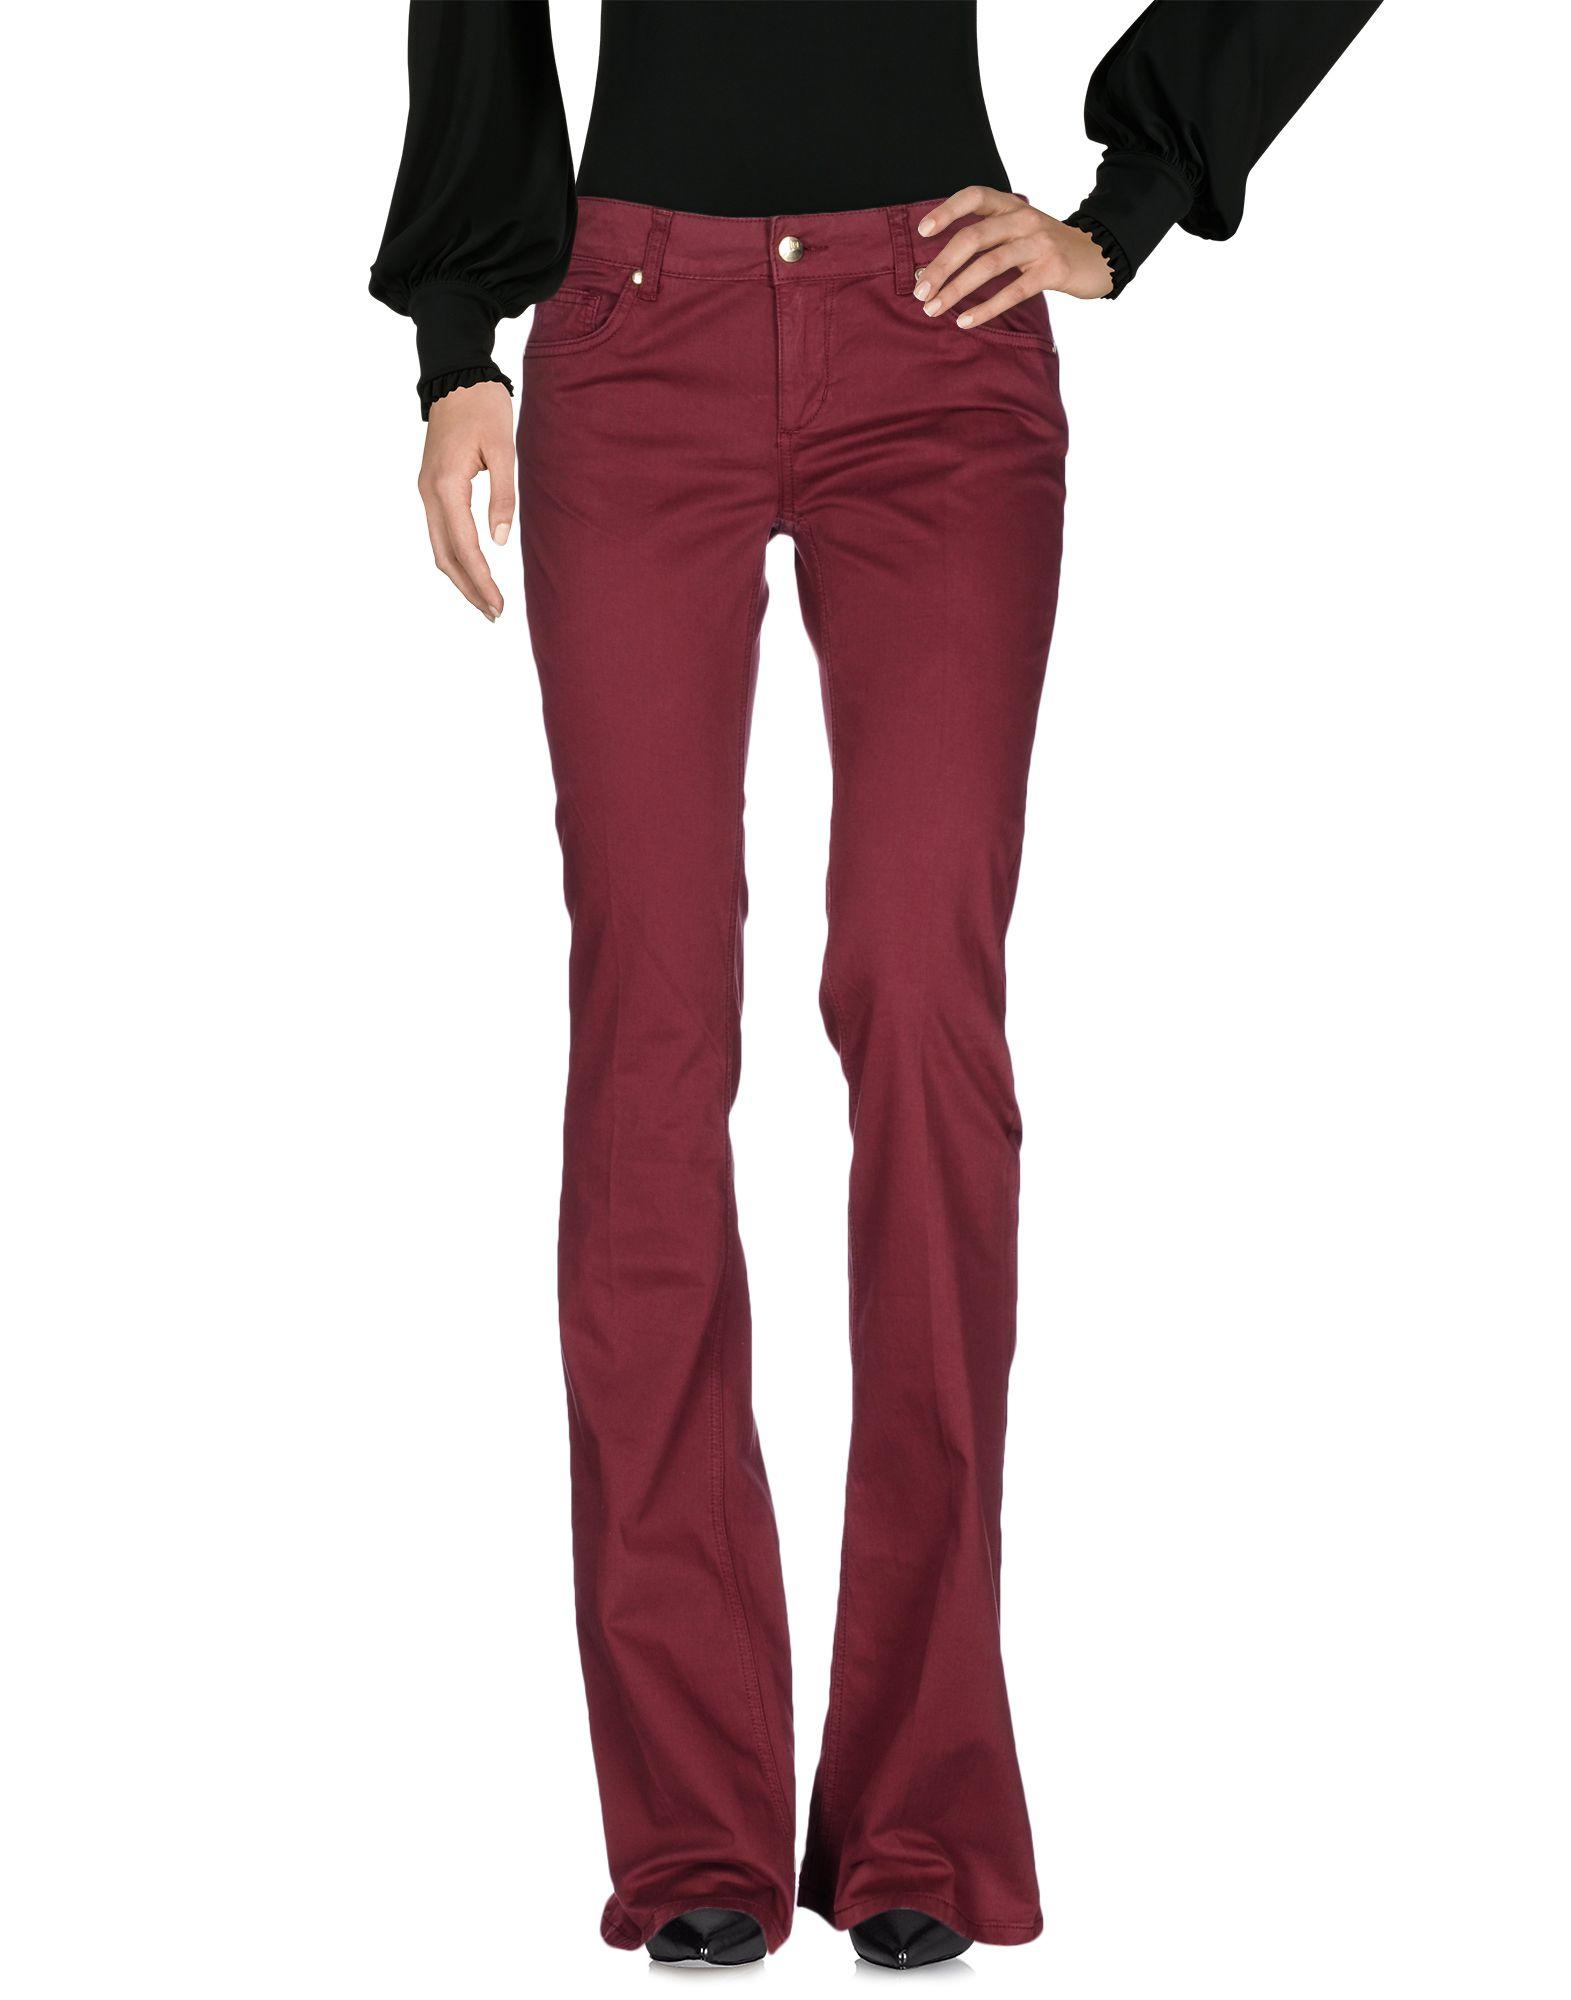 Liu •jo Casual Pants In Maroon